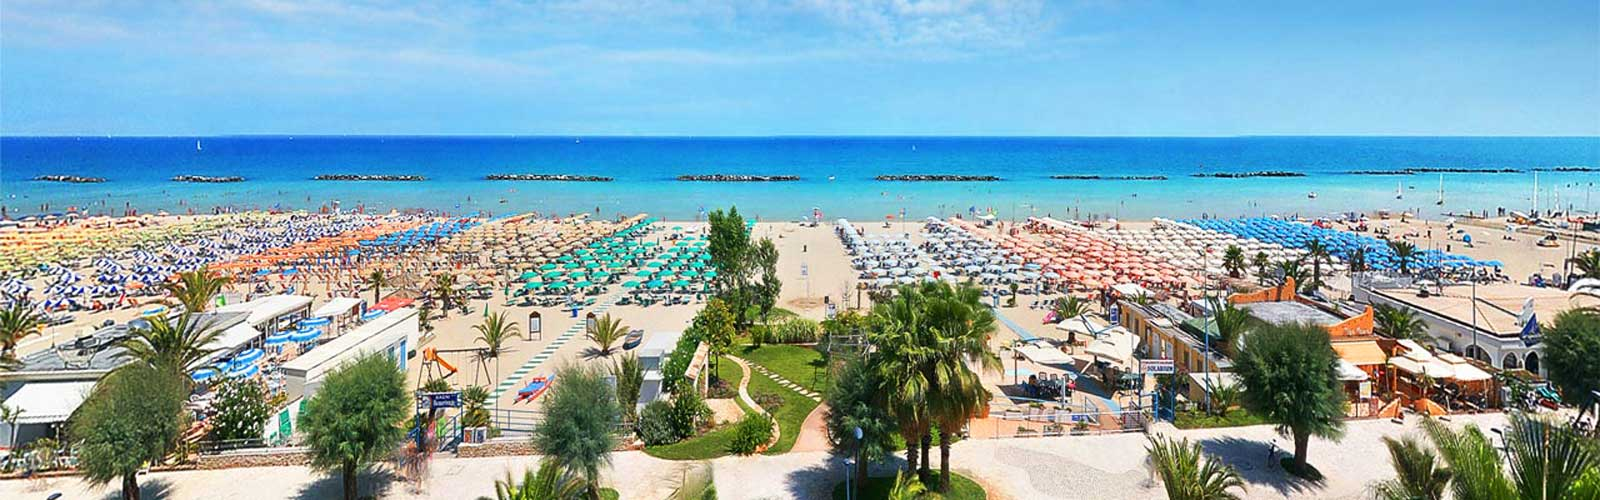 residence a san benedetto del tronto